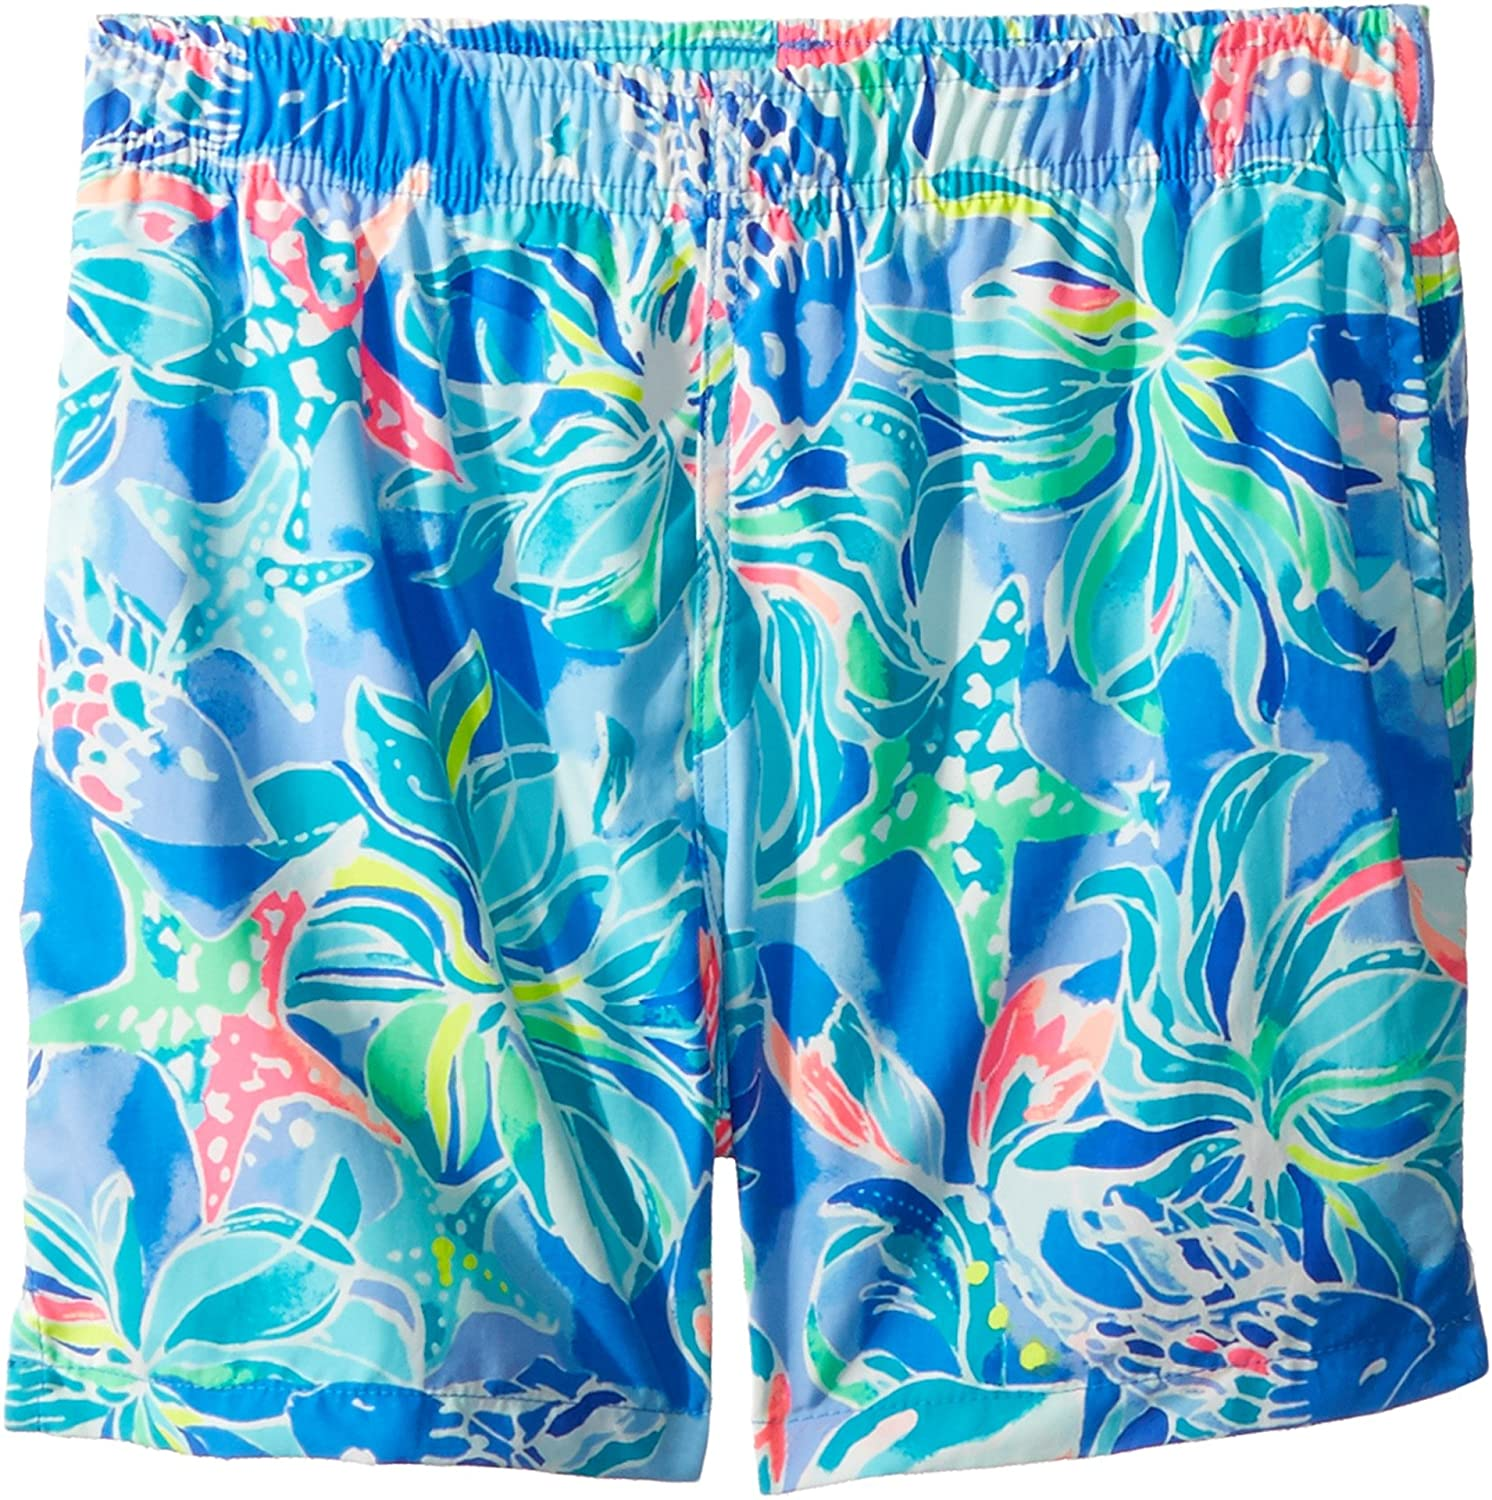 Lilly Pulitzer Kids Mens Capri Trunks (Toddler/Little Kids/Big Kids)